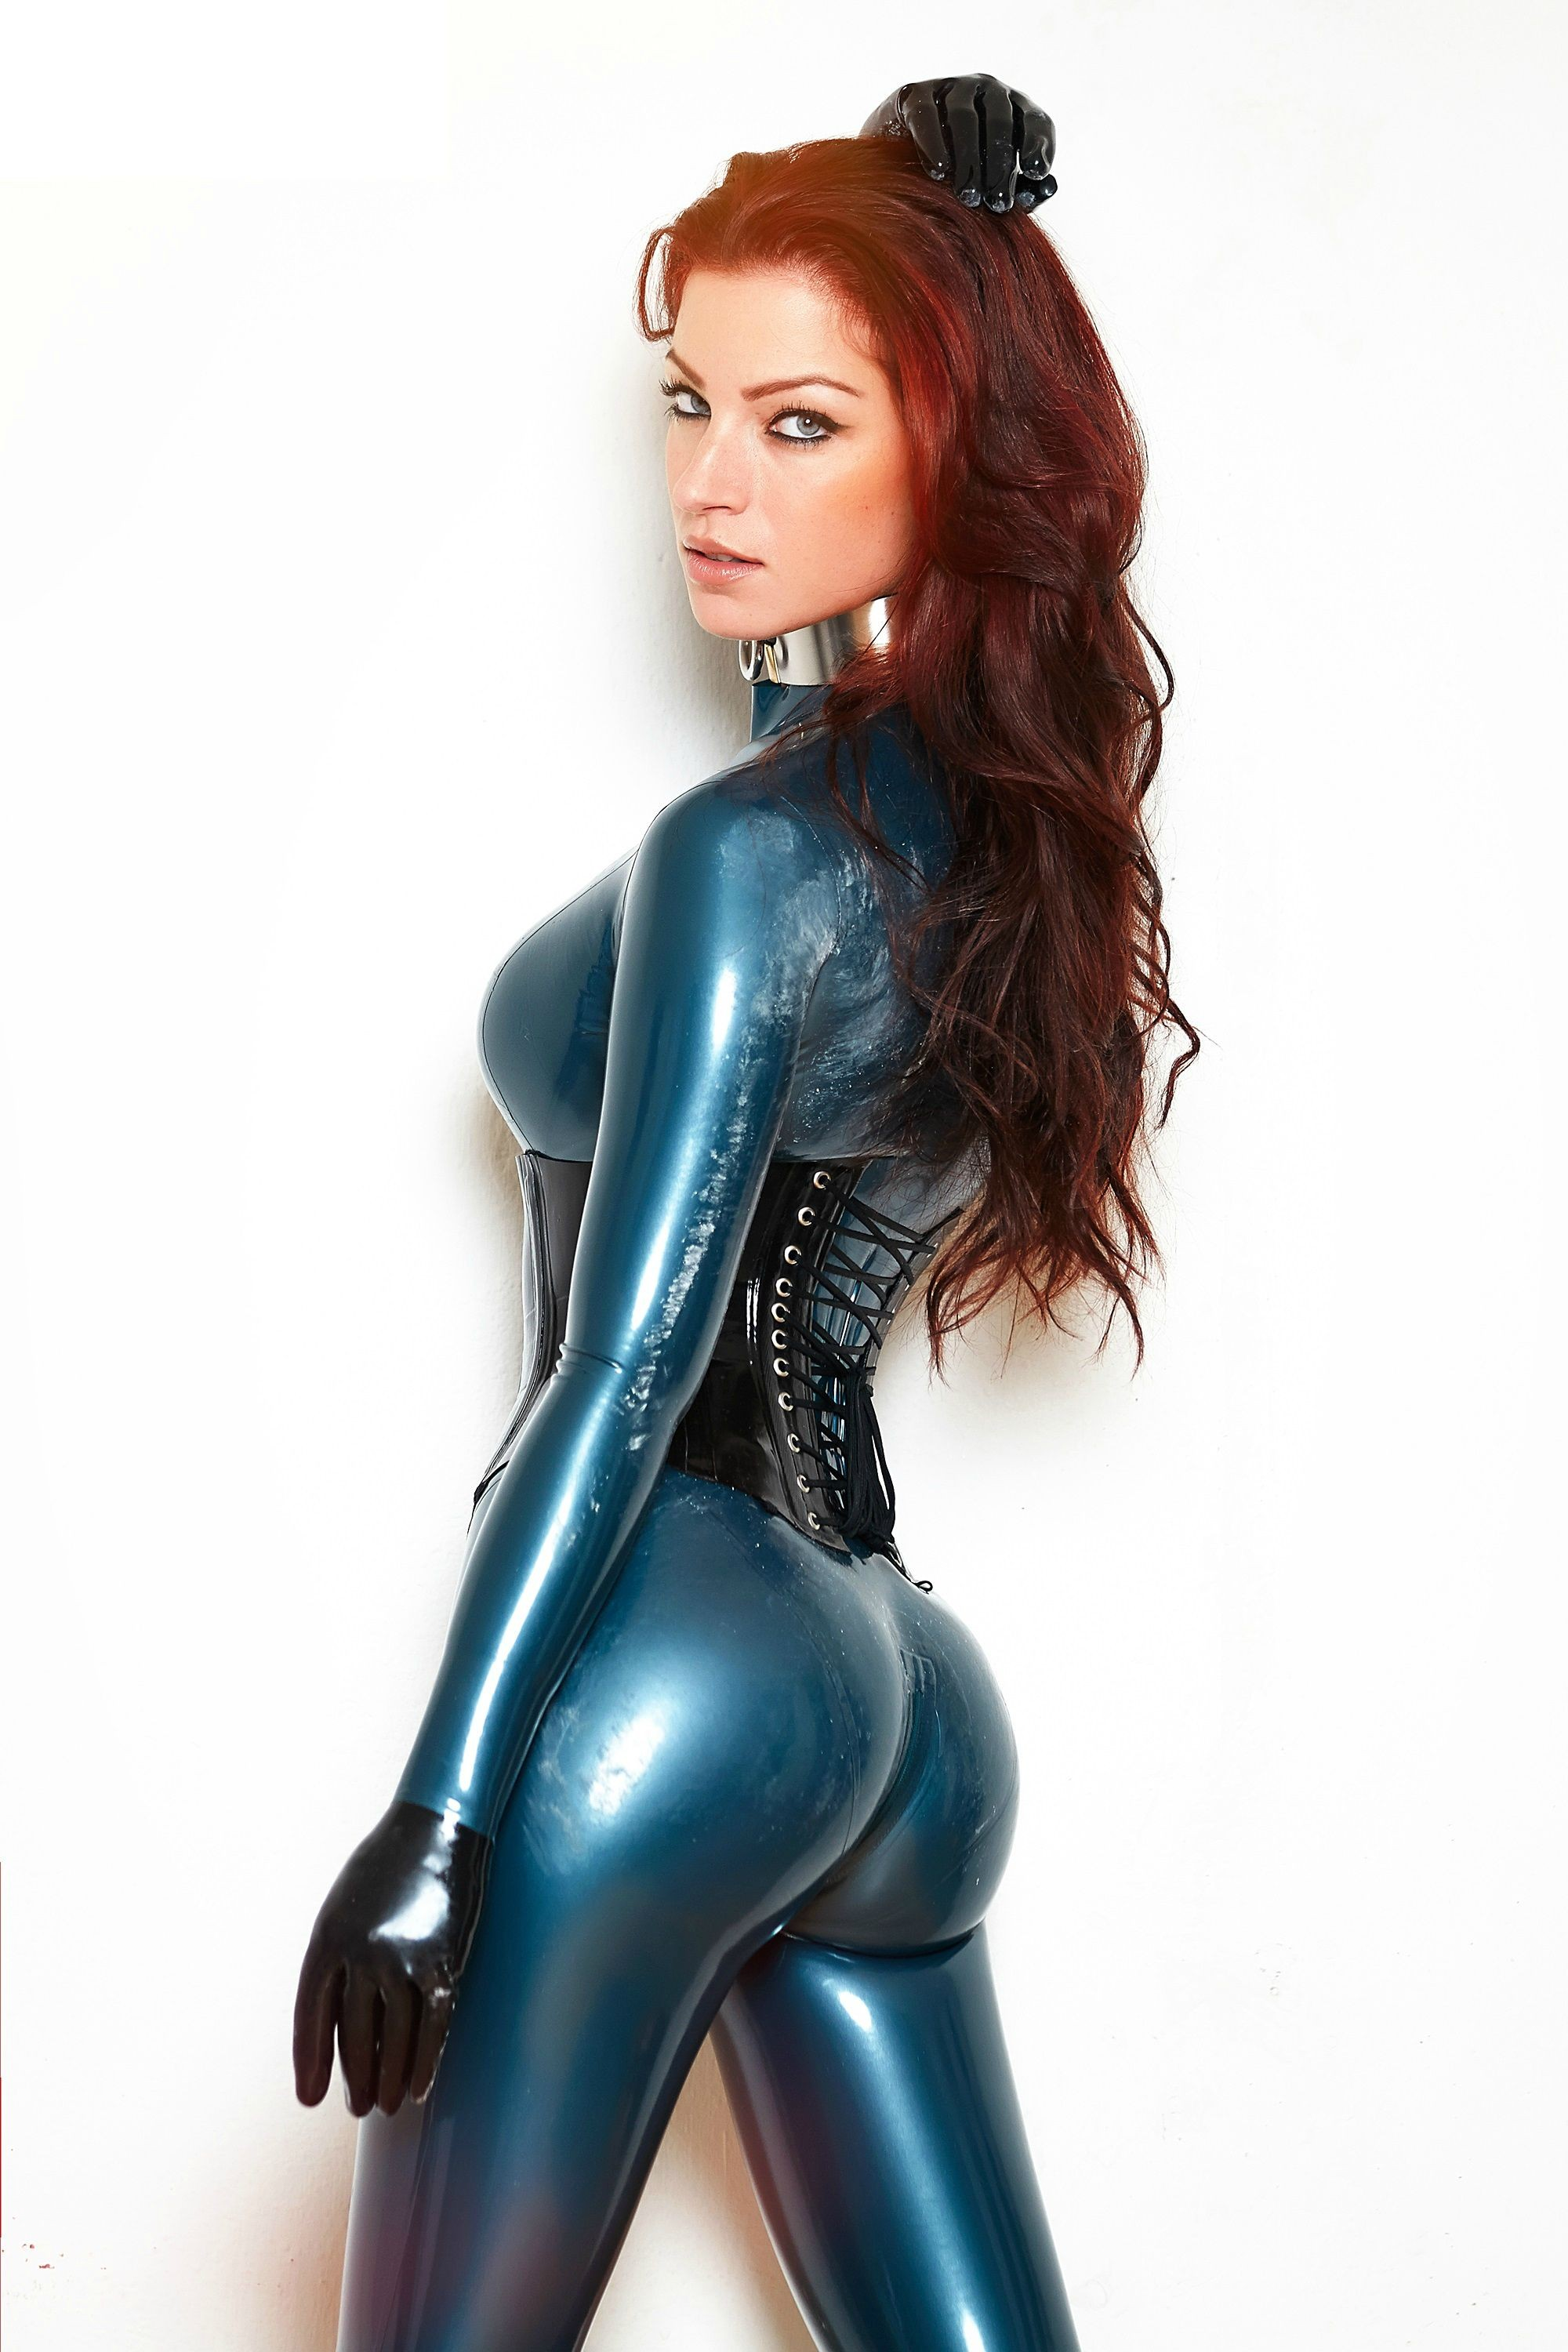 private chat for free no credit card Alexandracorneille, Catsuit, Collar, Cutegirl, Fuckable, Greatbody, Greatlegs, Hotpants, Jacket, Latex, Latex, Longhair, Perfecttoy, Pink, Pinkoverload, Slimwaist, Wanttofuckher